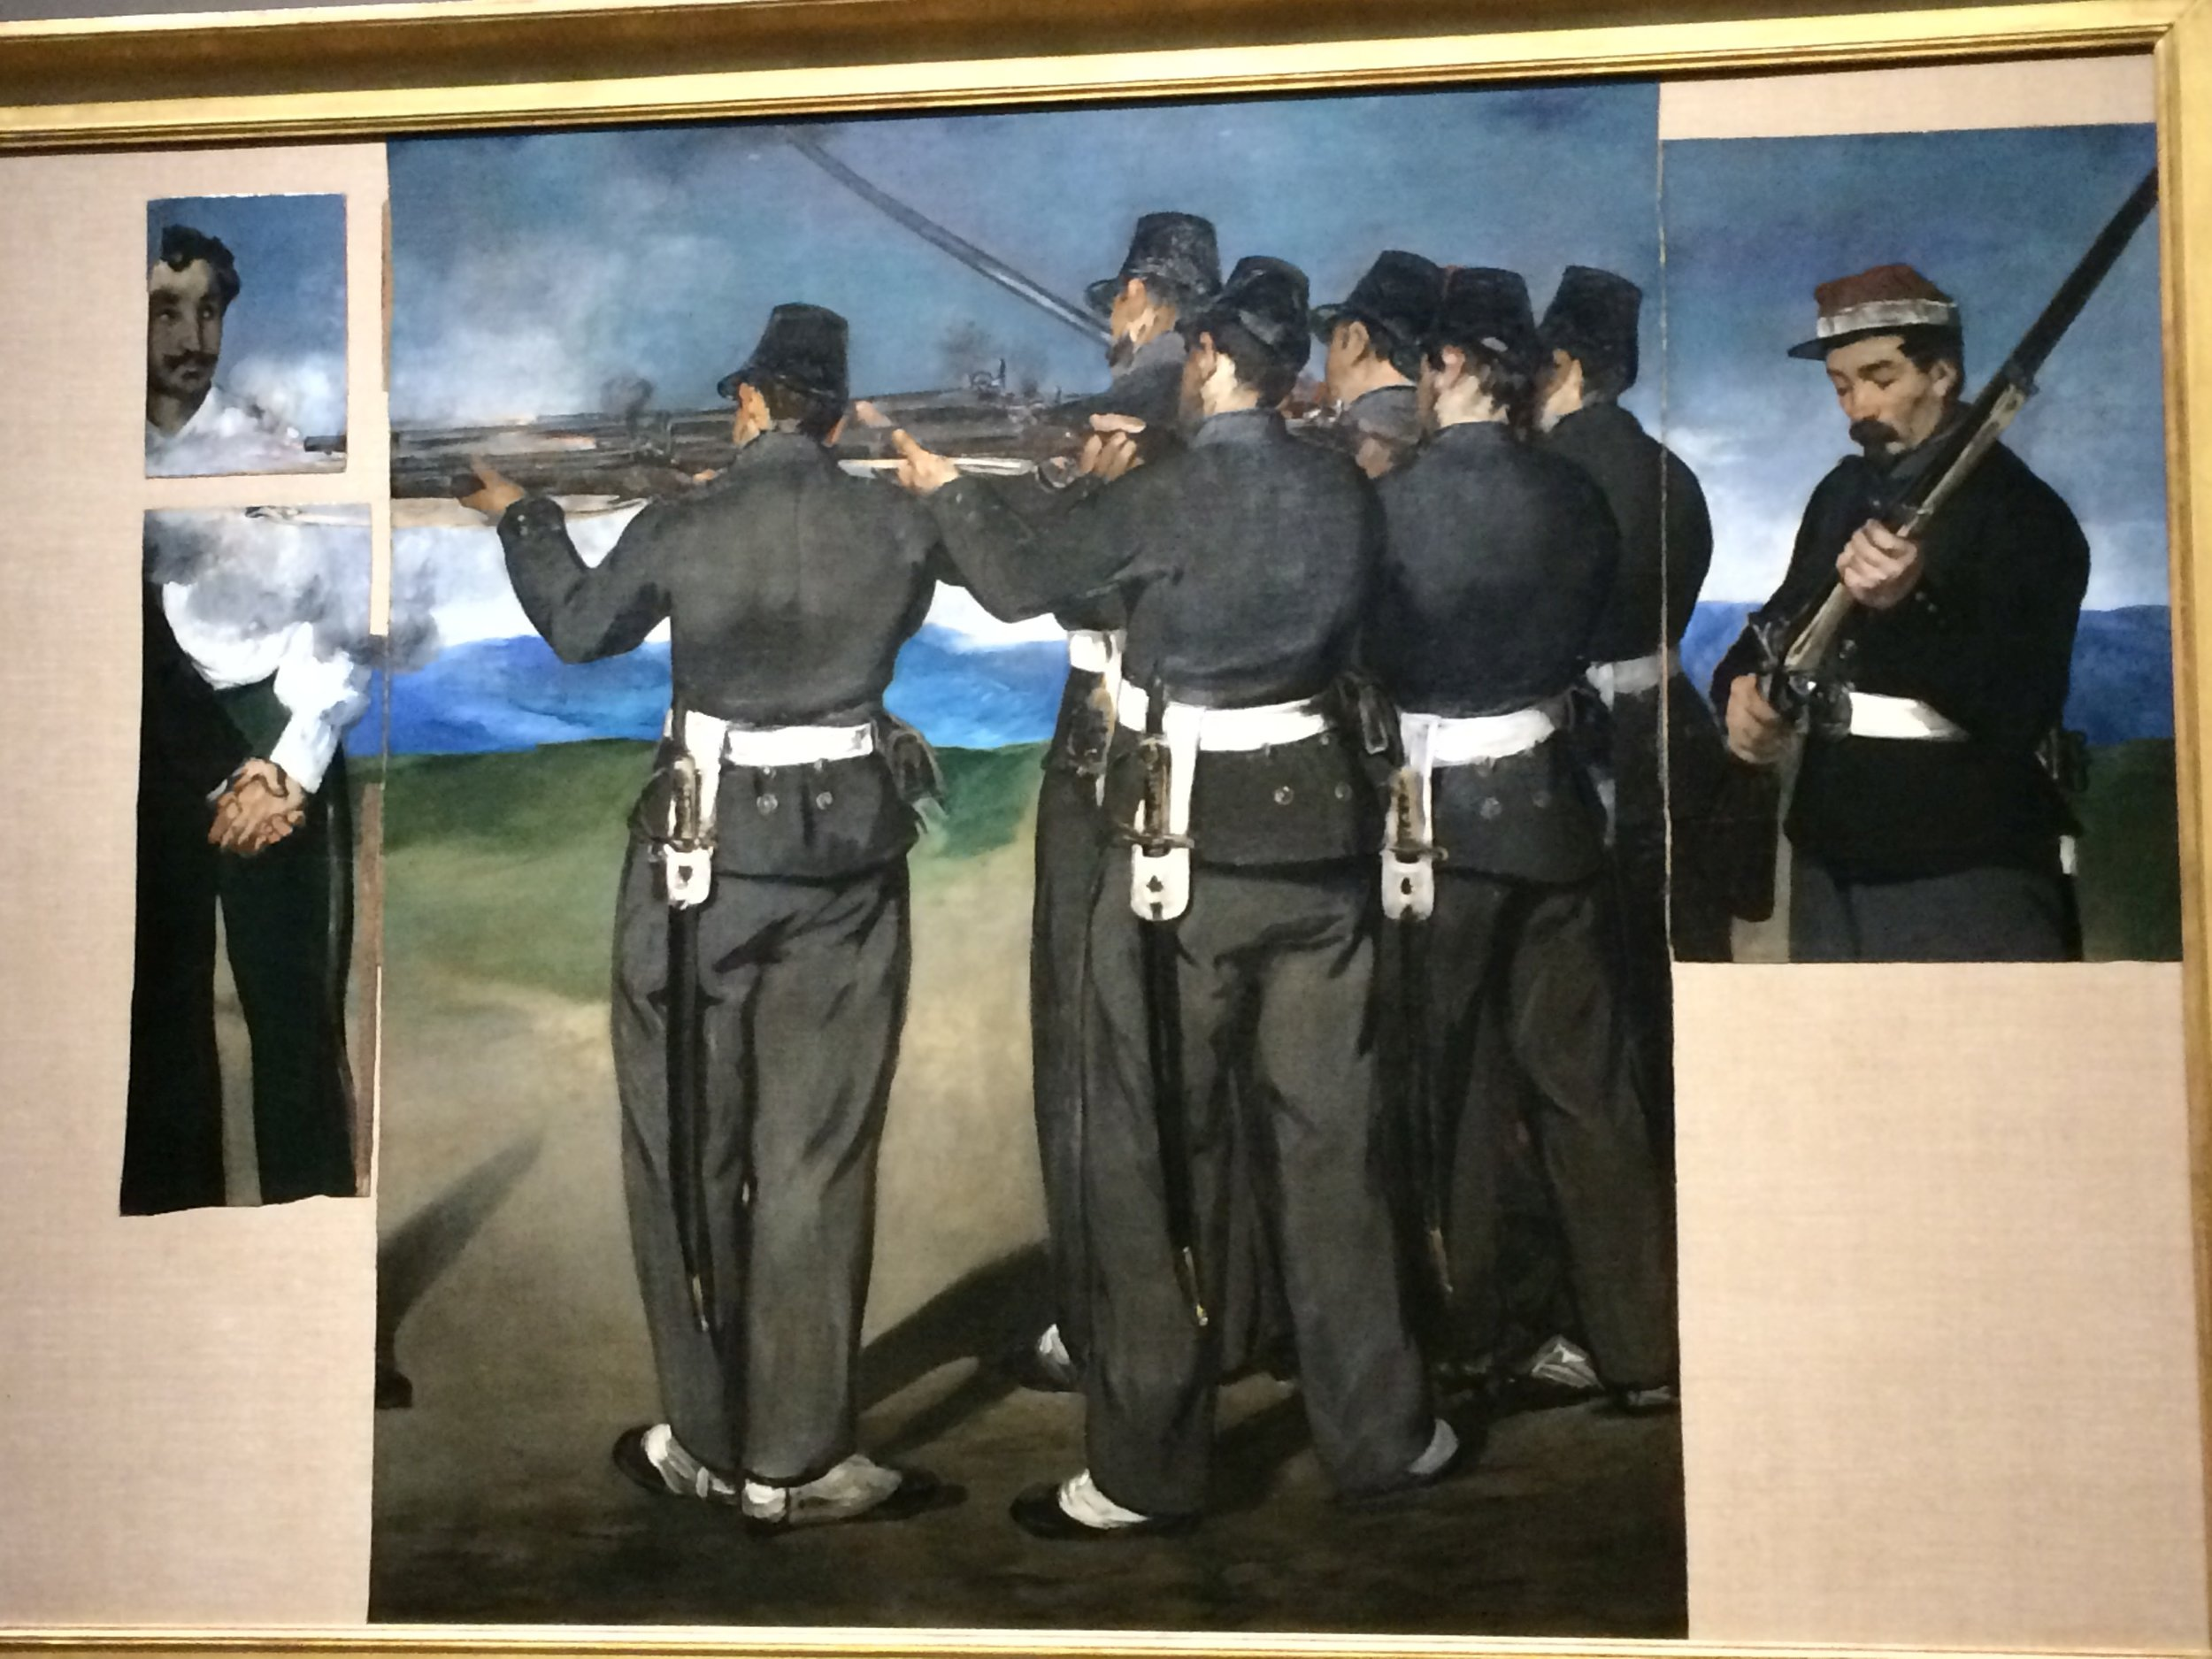 Seen many times in books, first time in person - Manet's Execution of the Emperor Maxillian